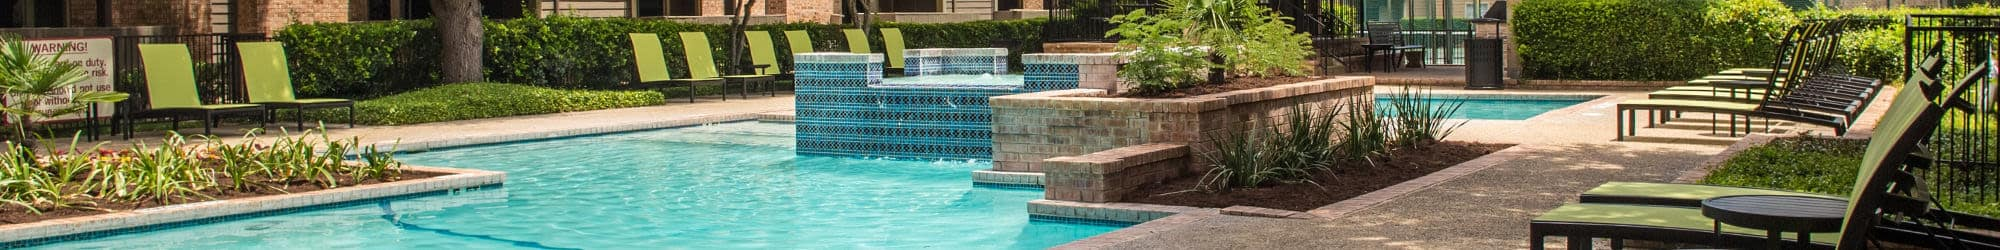 Amenities available at The Abbey at Copper Creek in San Antonio